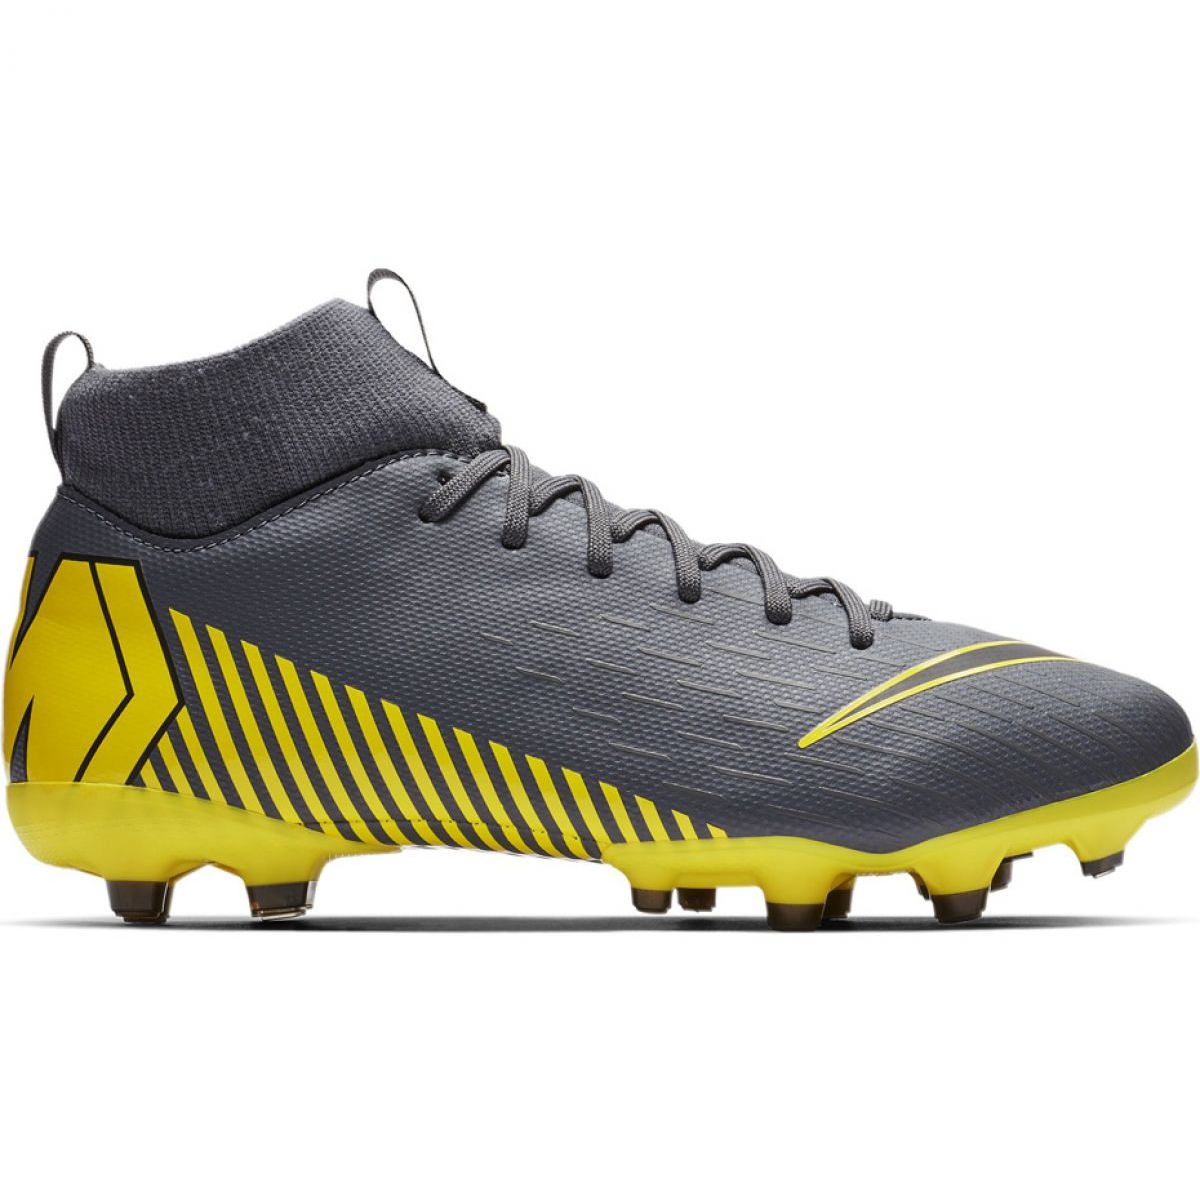 Football shoes Nike Mercurial Superfly